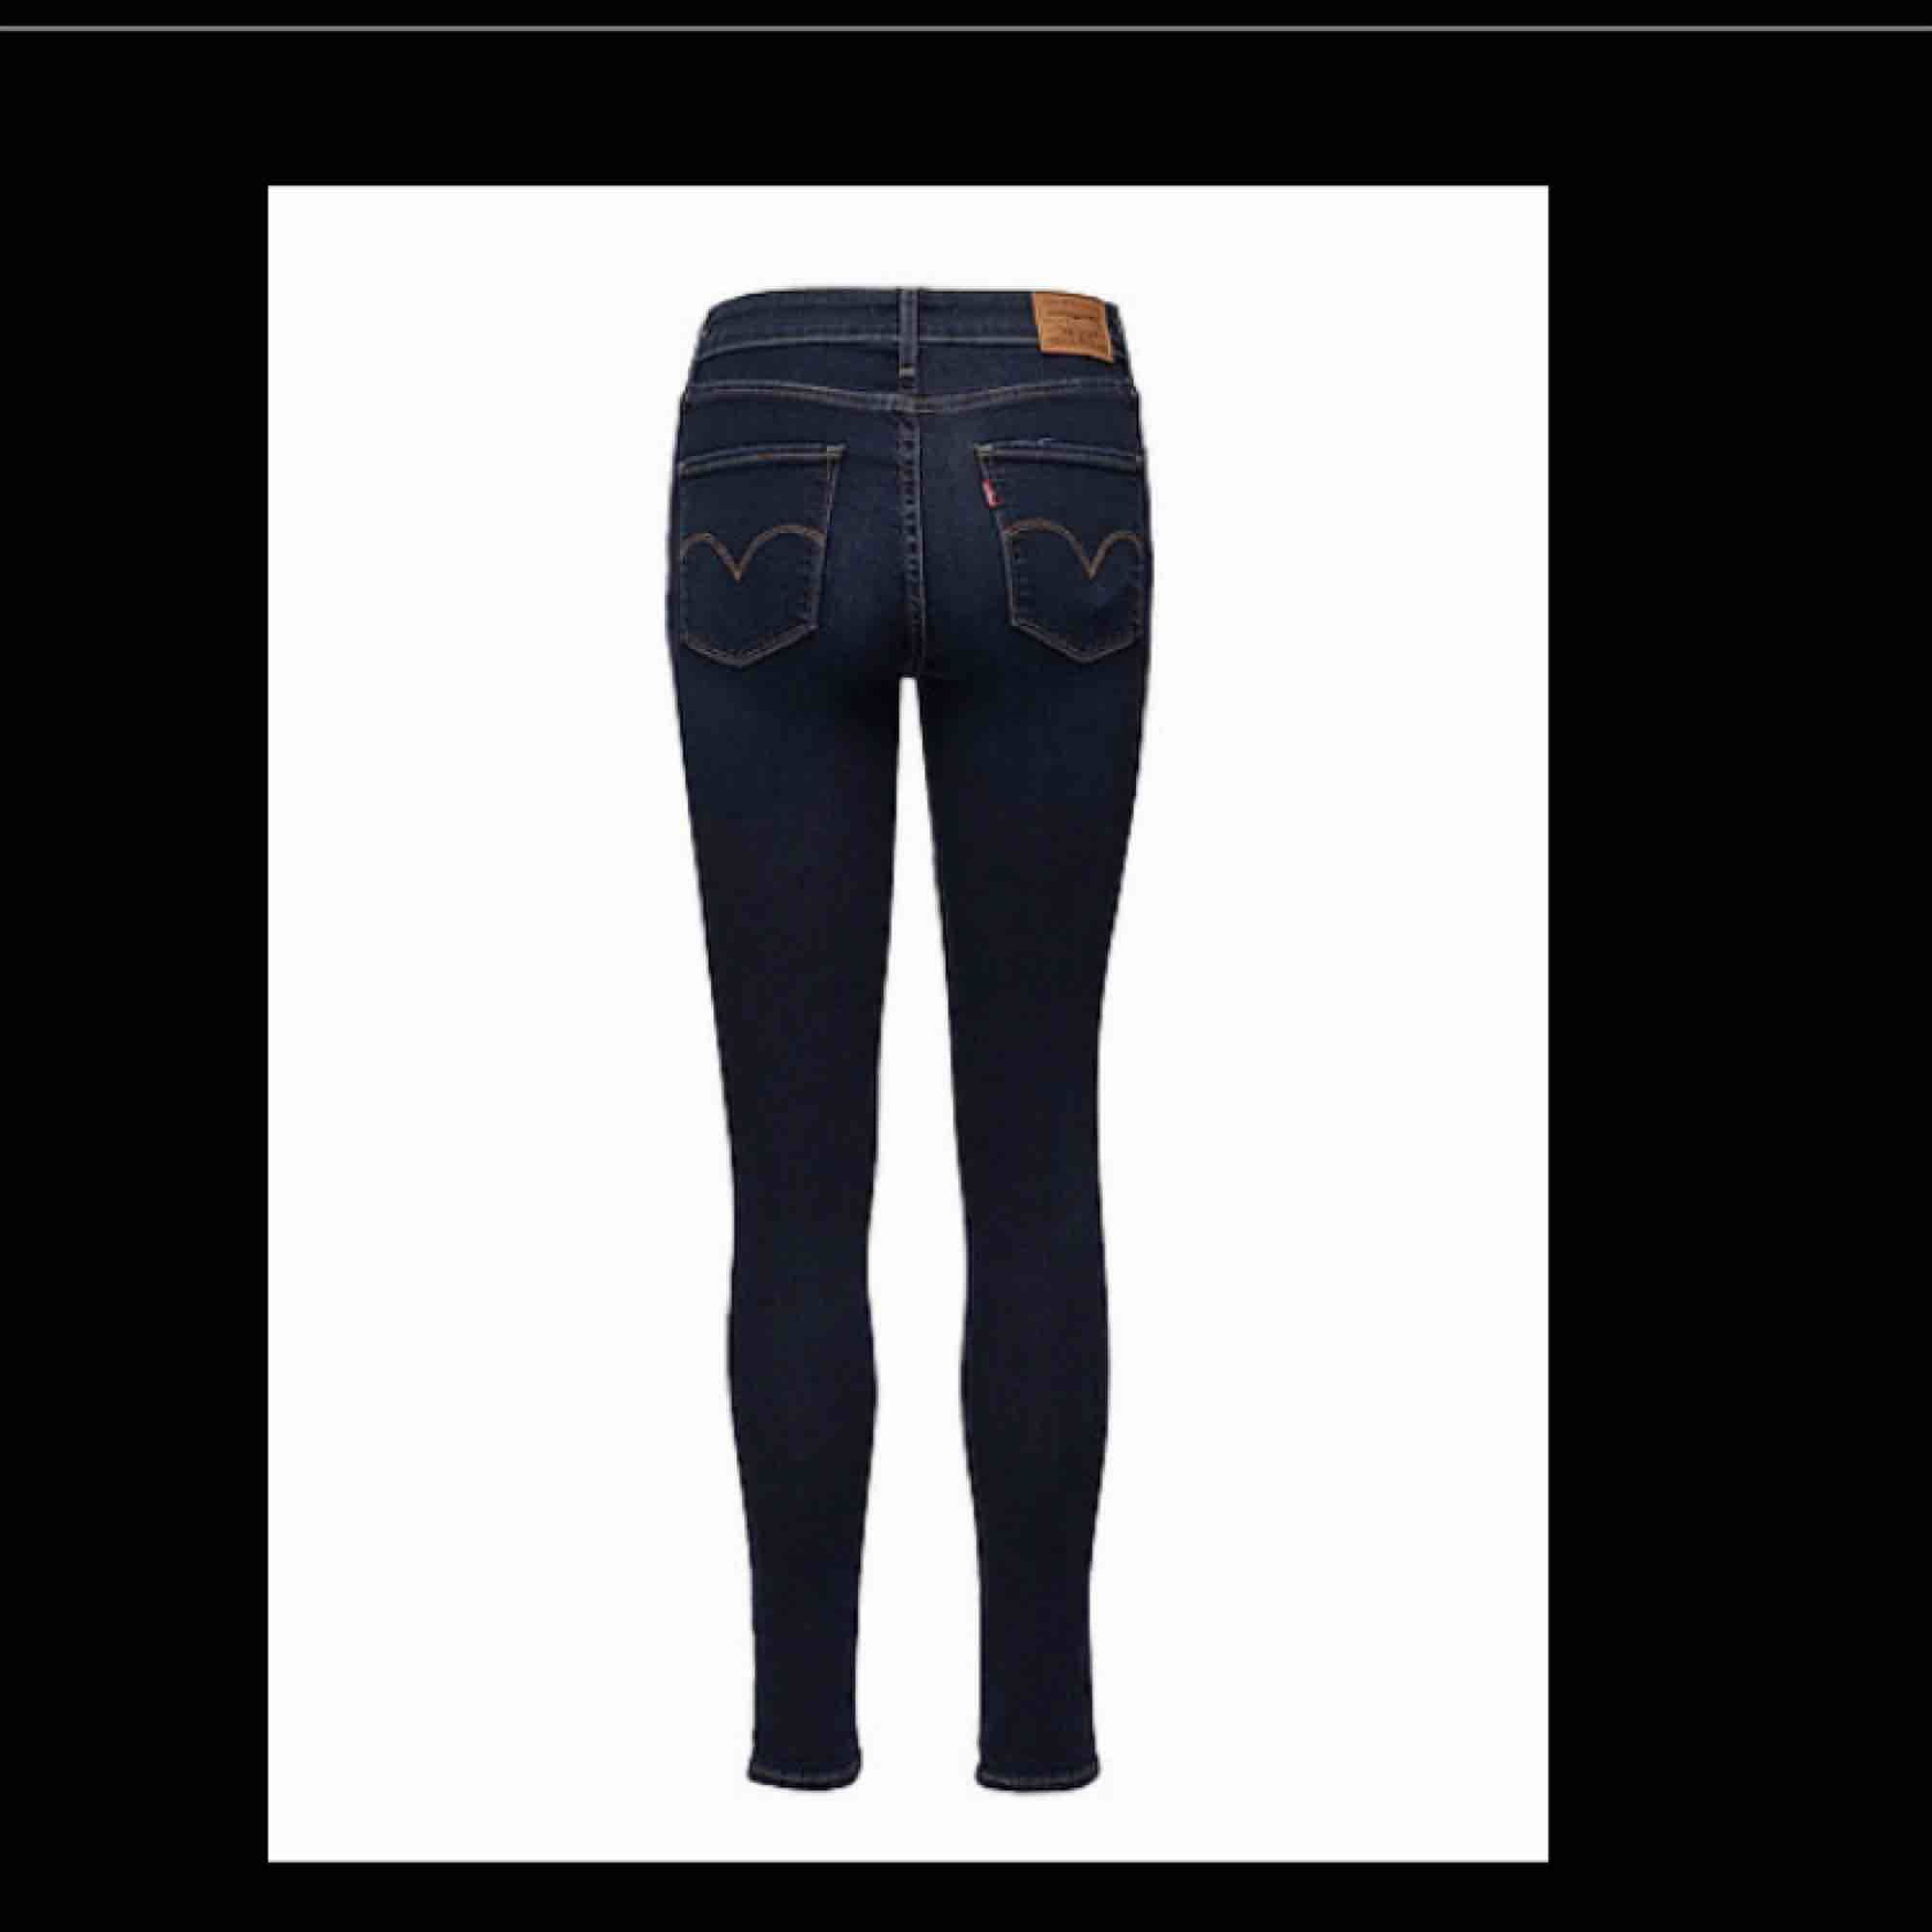 721 high Rise skinny Levis jeans. Jeans & Byxor.